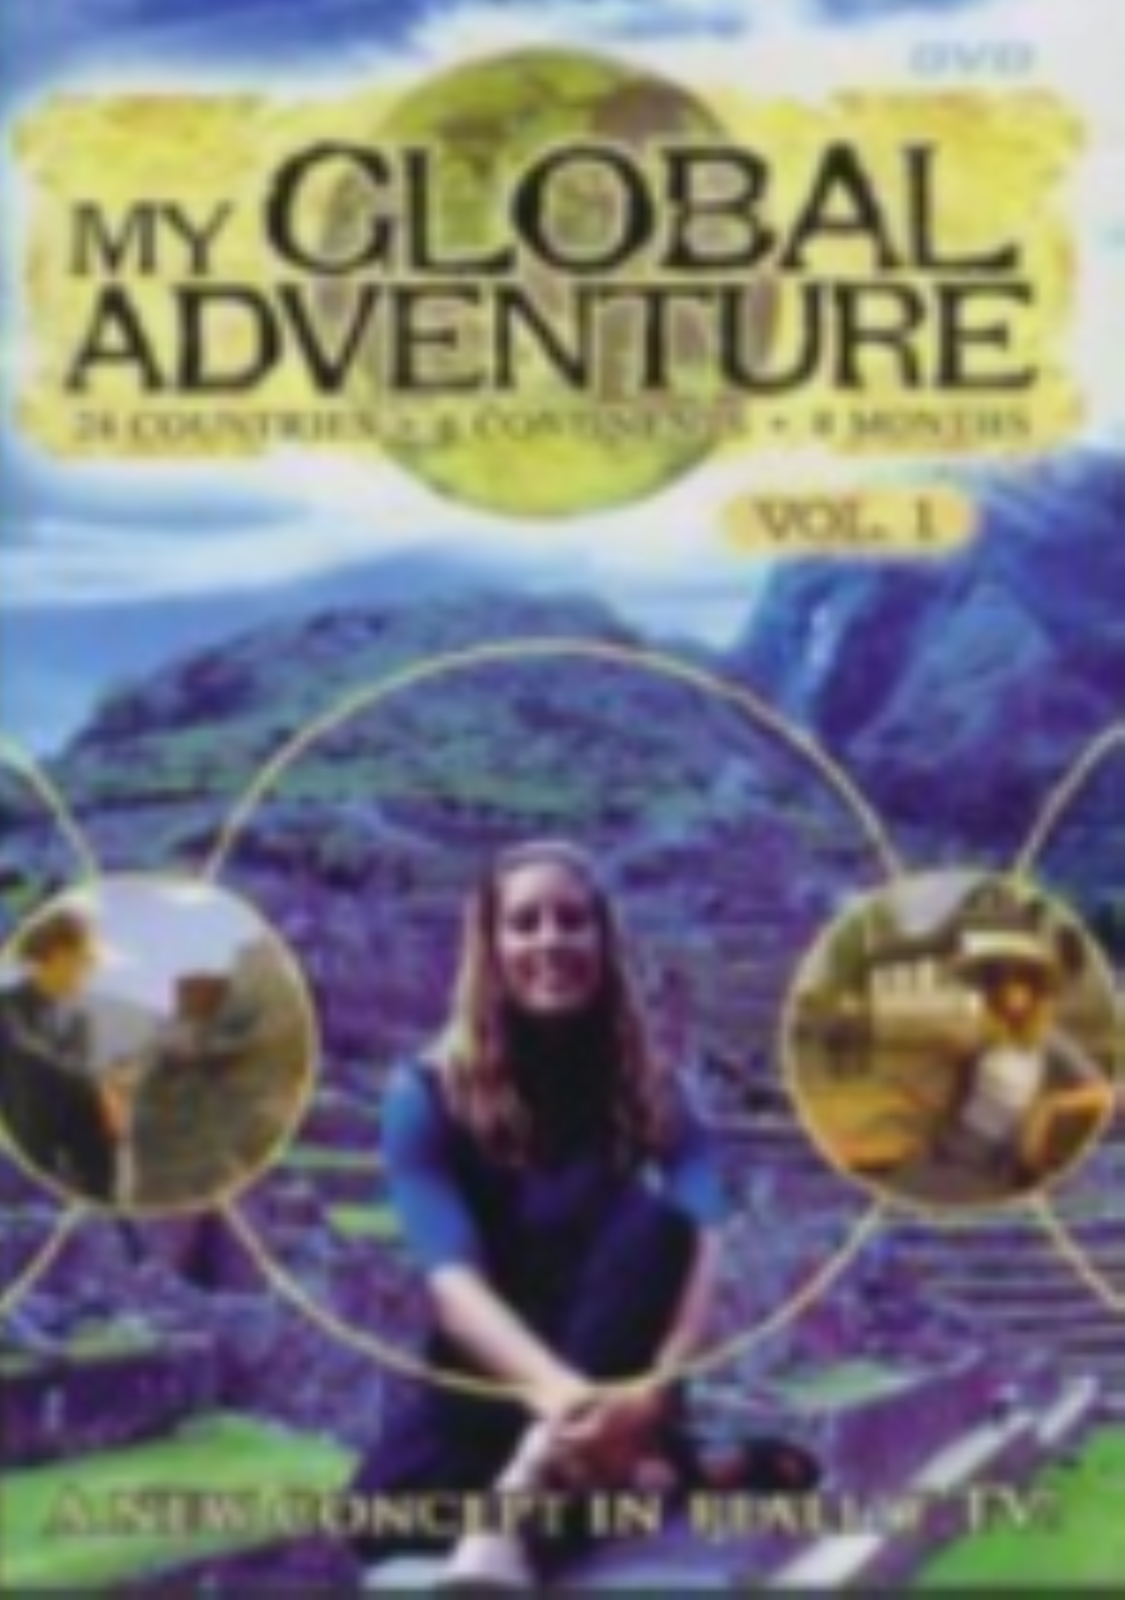 My Global Adventure, Vol. 1 Dvd